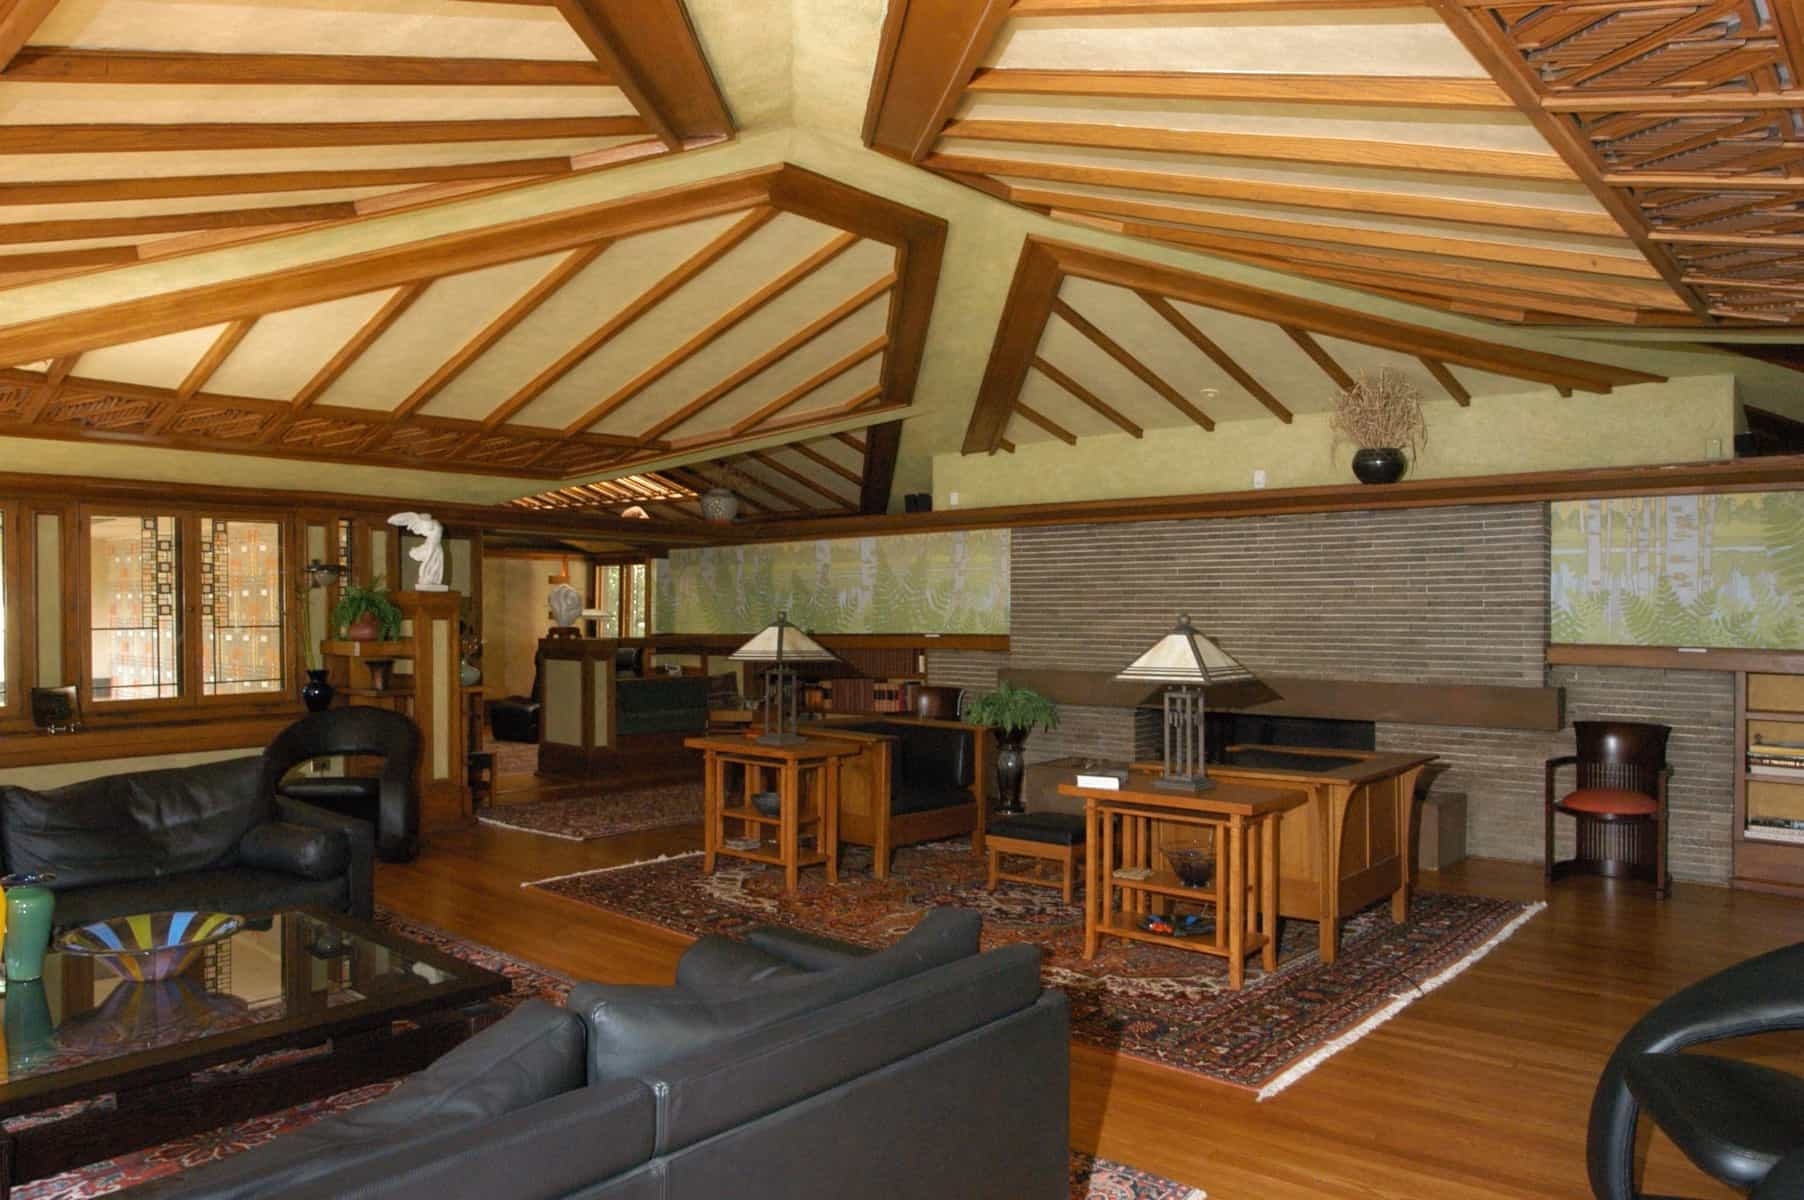 Featured Image of Craftsman Style Furnishings And Traditional Leather Sofas For Rustic Living Room